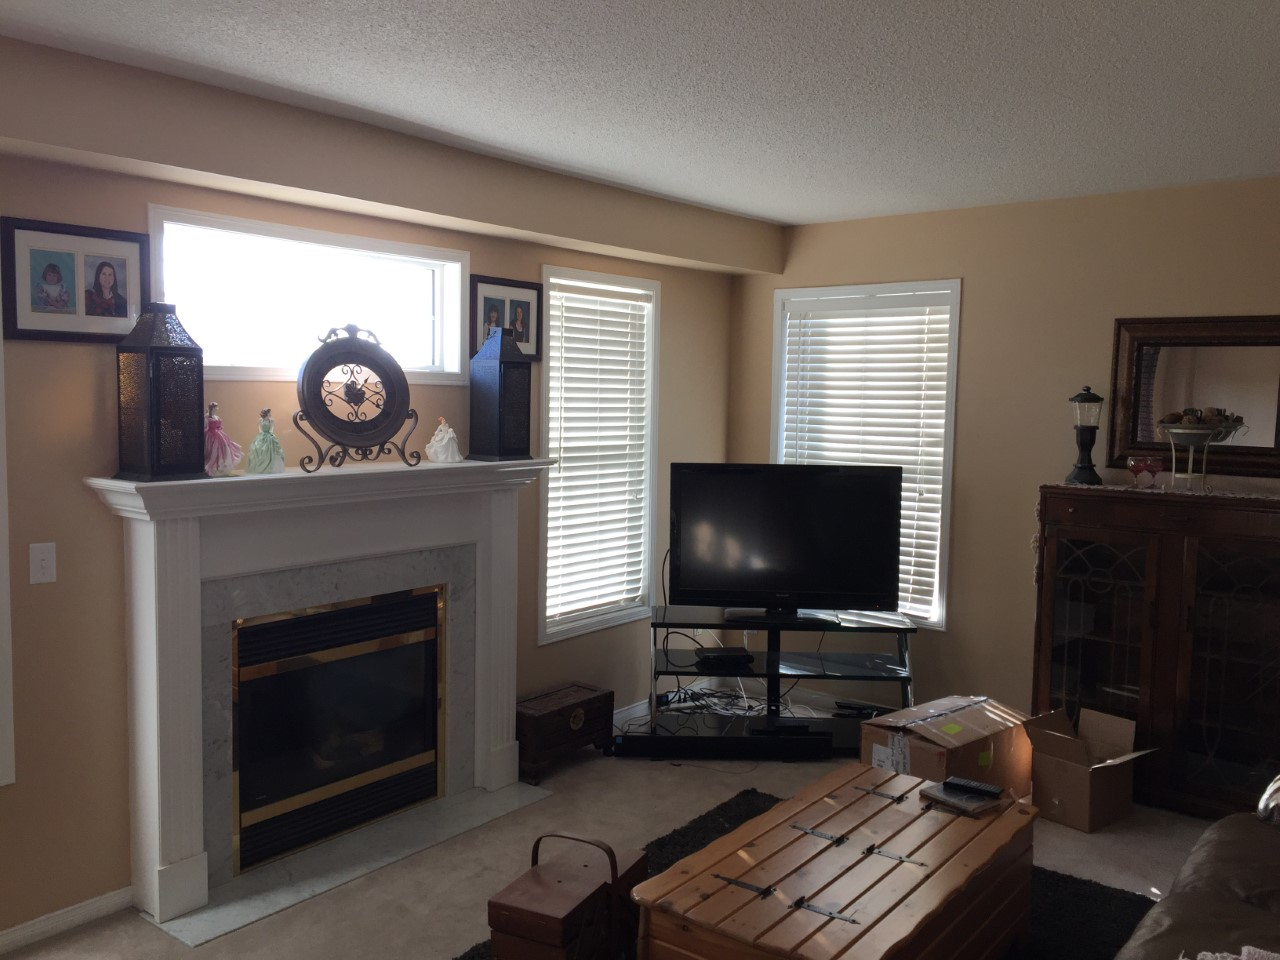 Apartment for rent at 11 Medland Ave, Whitby, ON. This is the living room with carpet, fireplace and natural light.